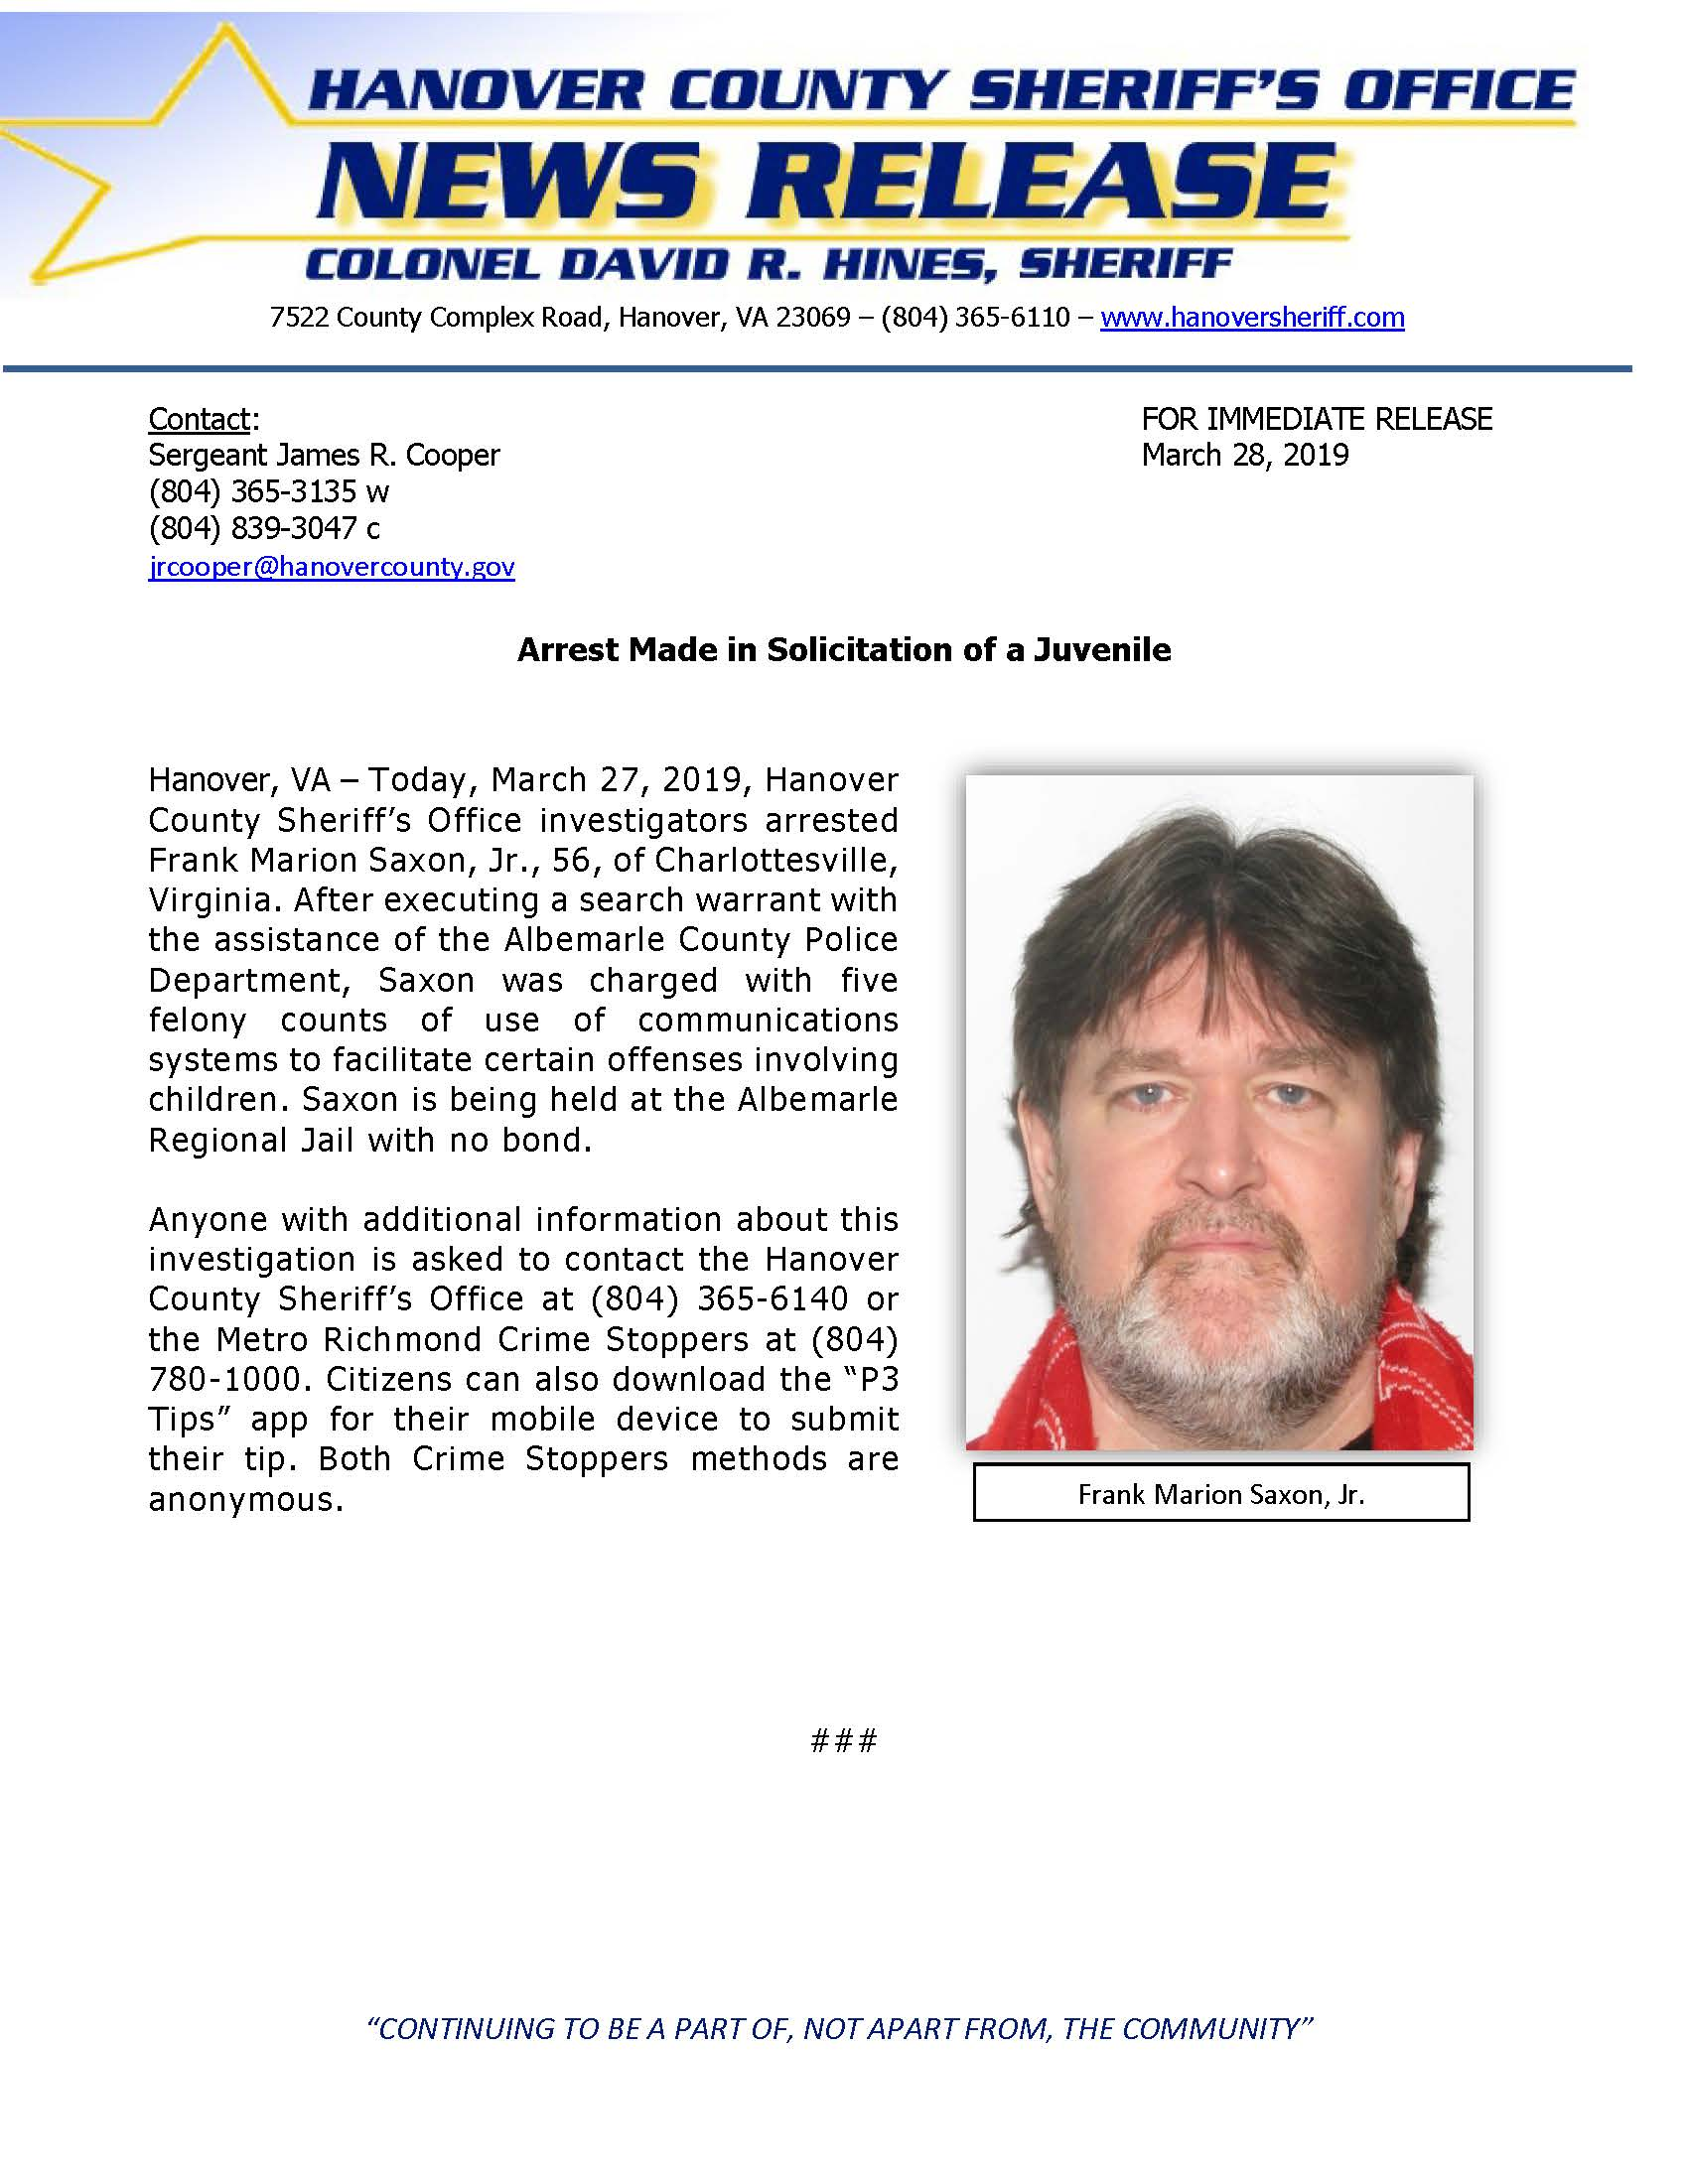 HCSO - Arrest Made in Solicitation of a Juvenile- March 28, 2019